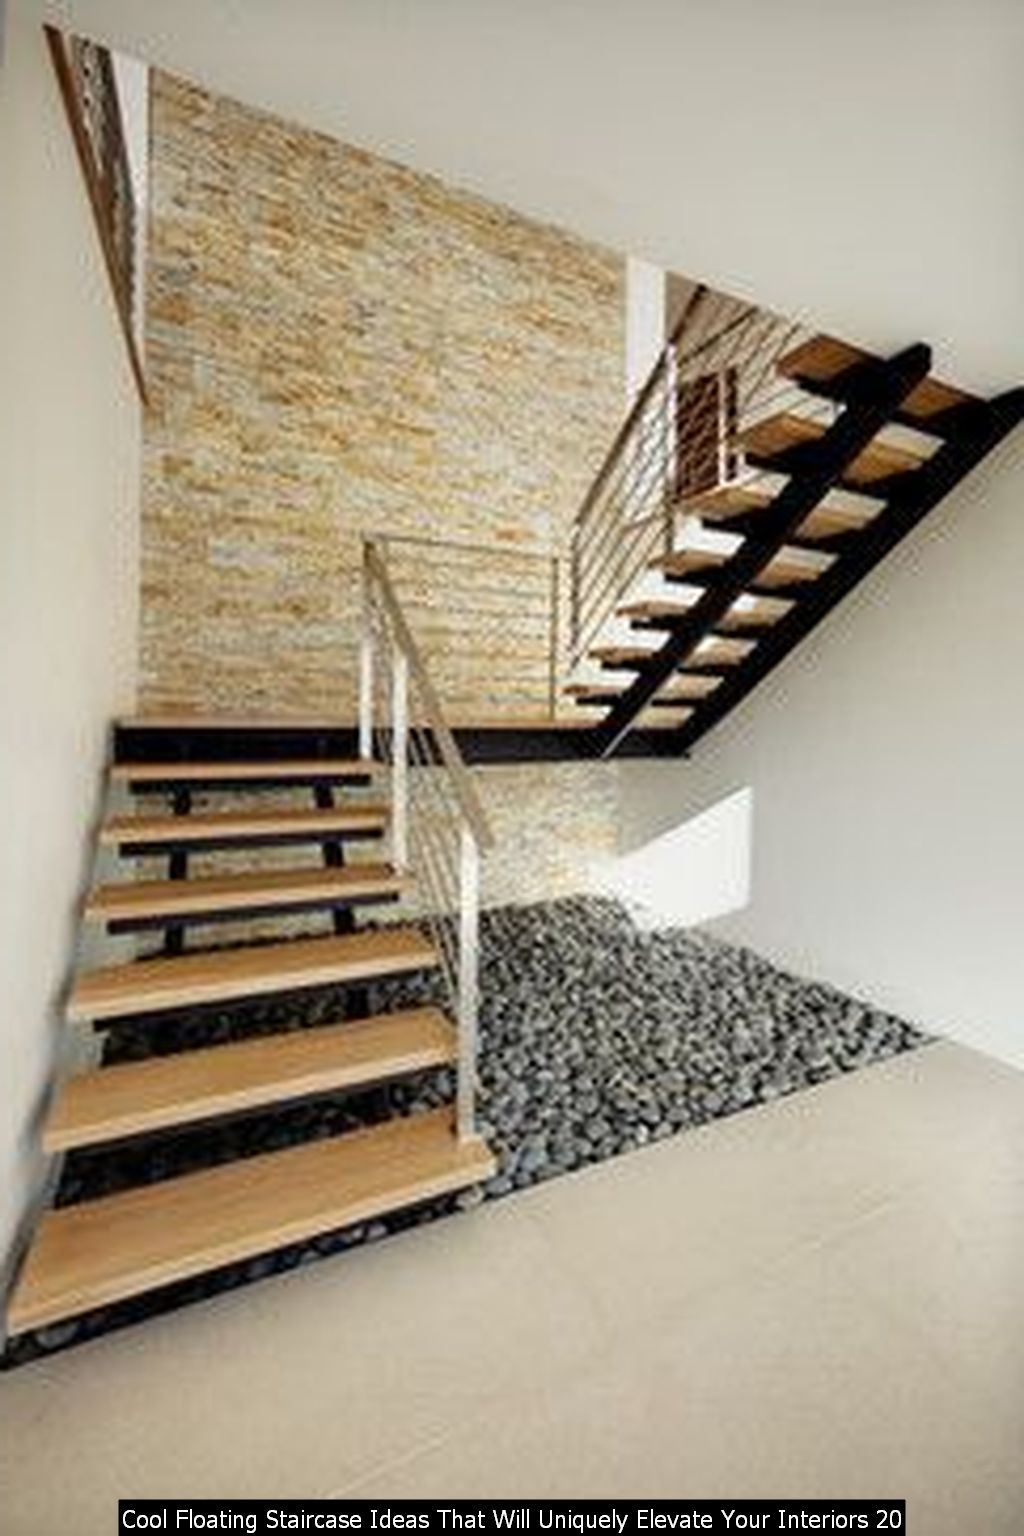 Cool Floating Staircase Ideas That Will Uniquely Elevate Your Interiors 20